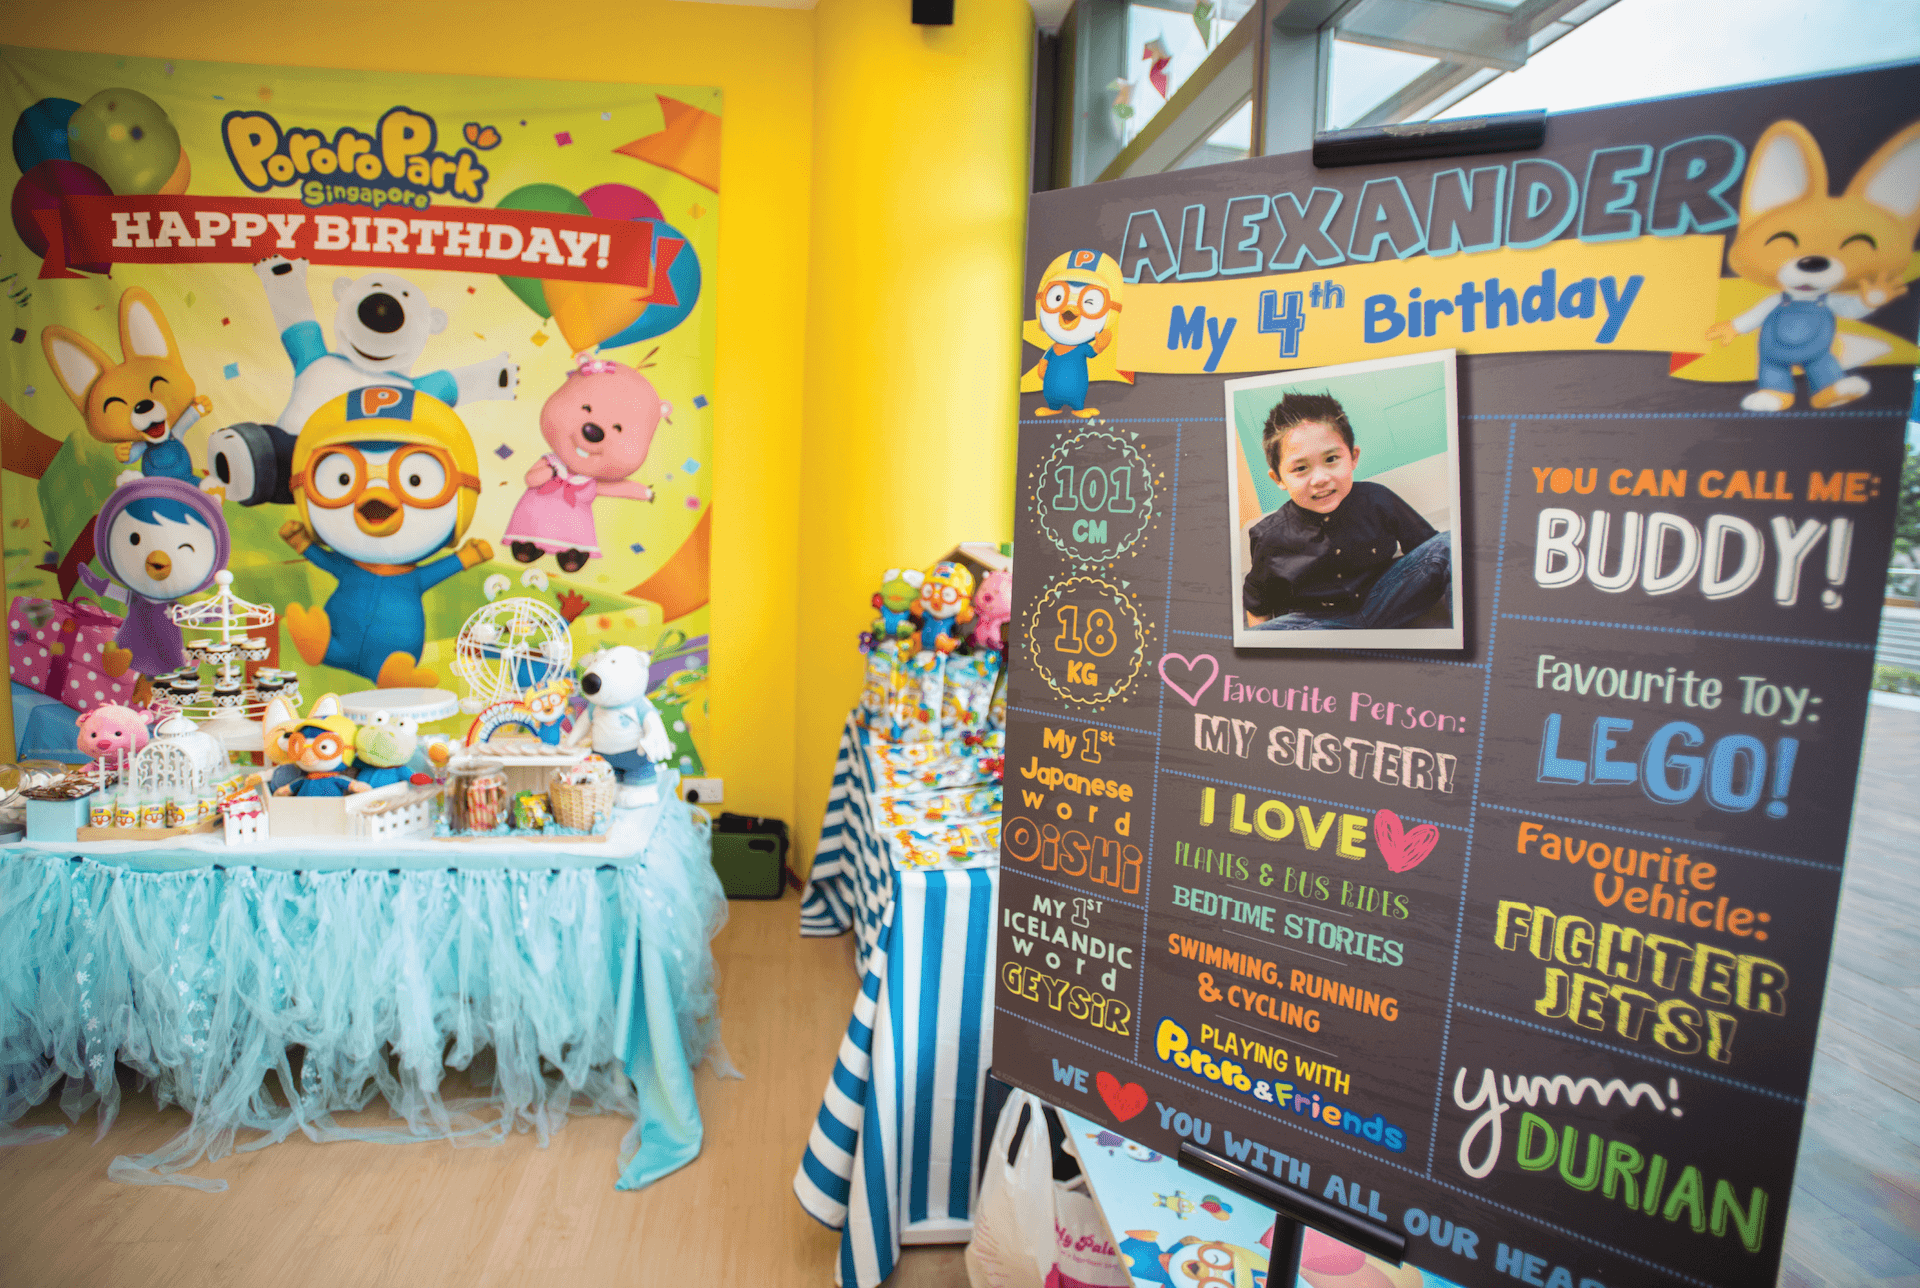 Birthday Party Add-Ons - Personalisation Board | Pororo Park Singapore